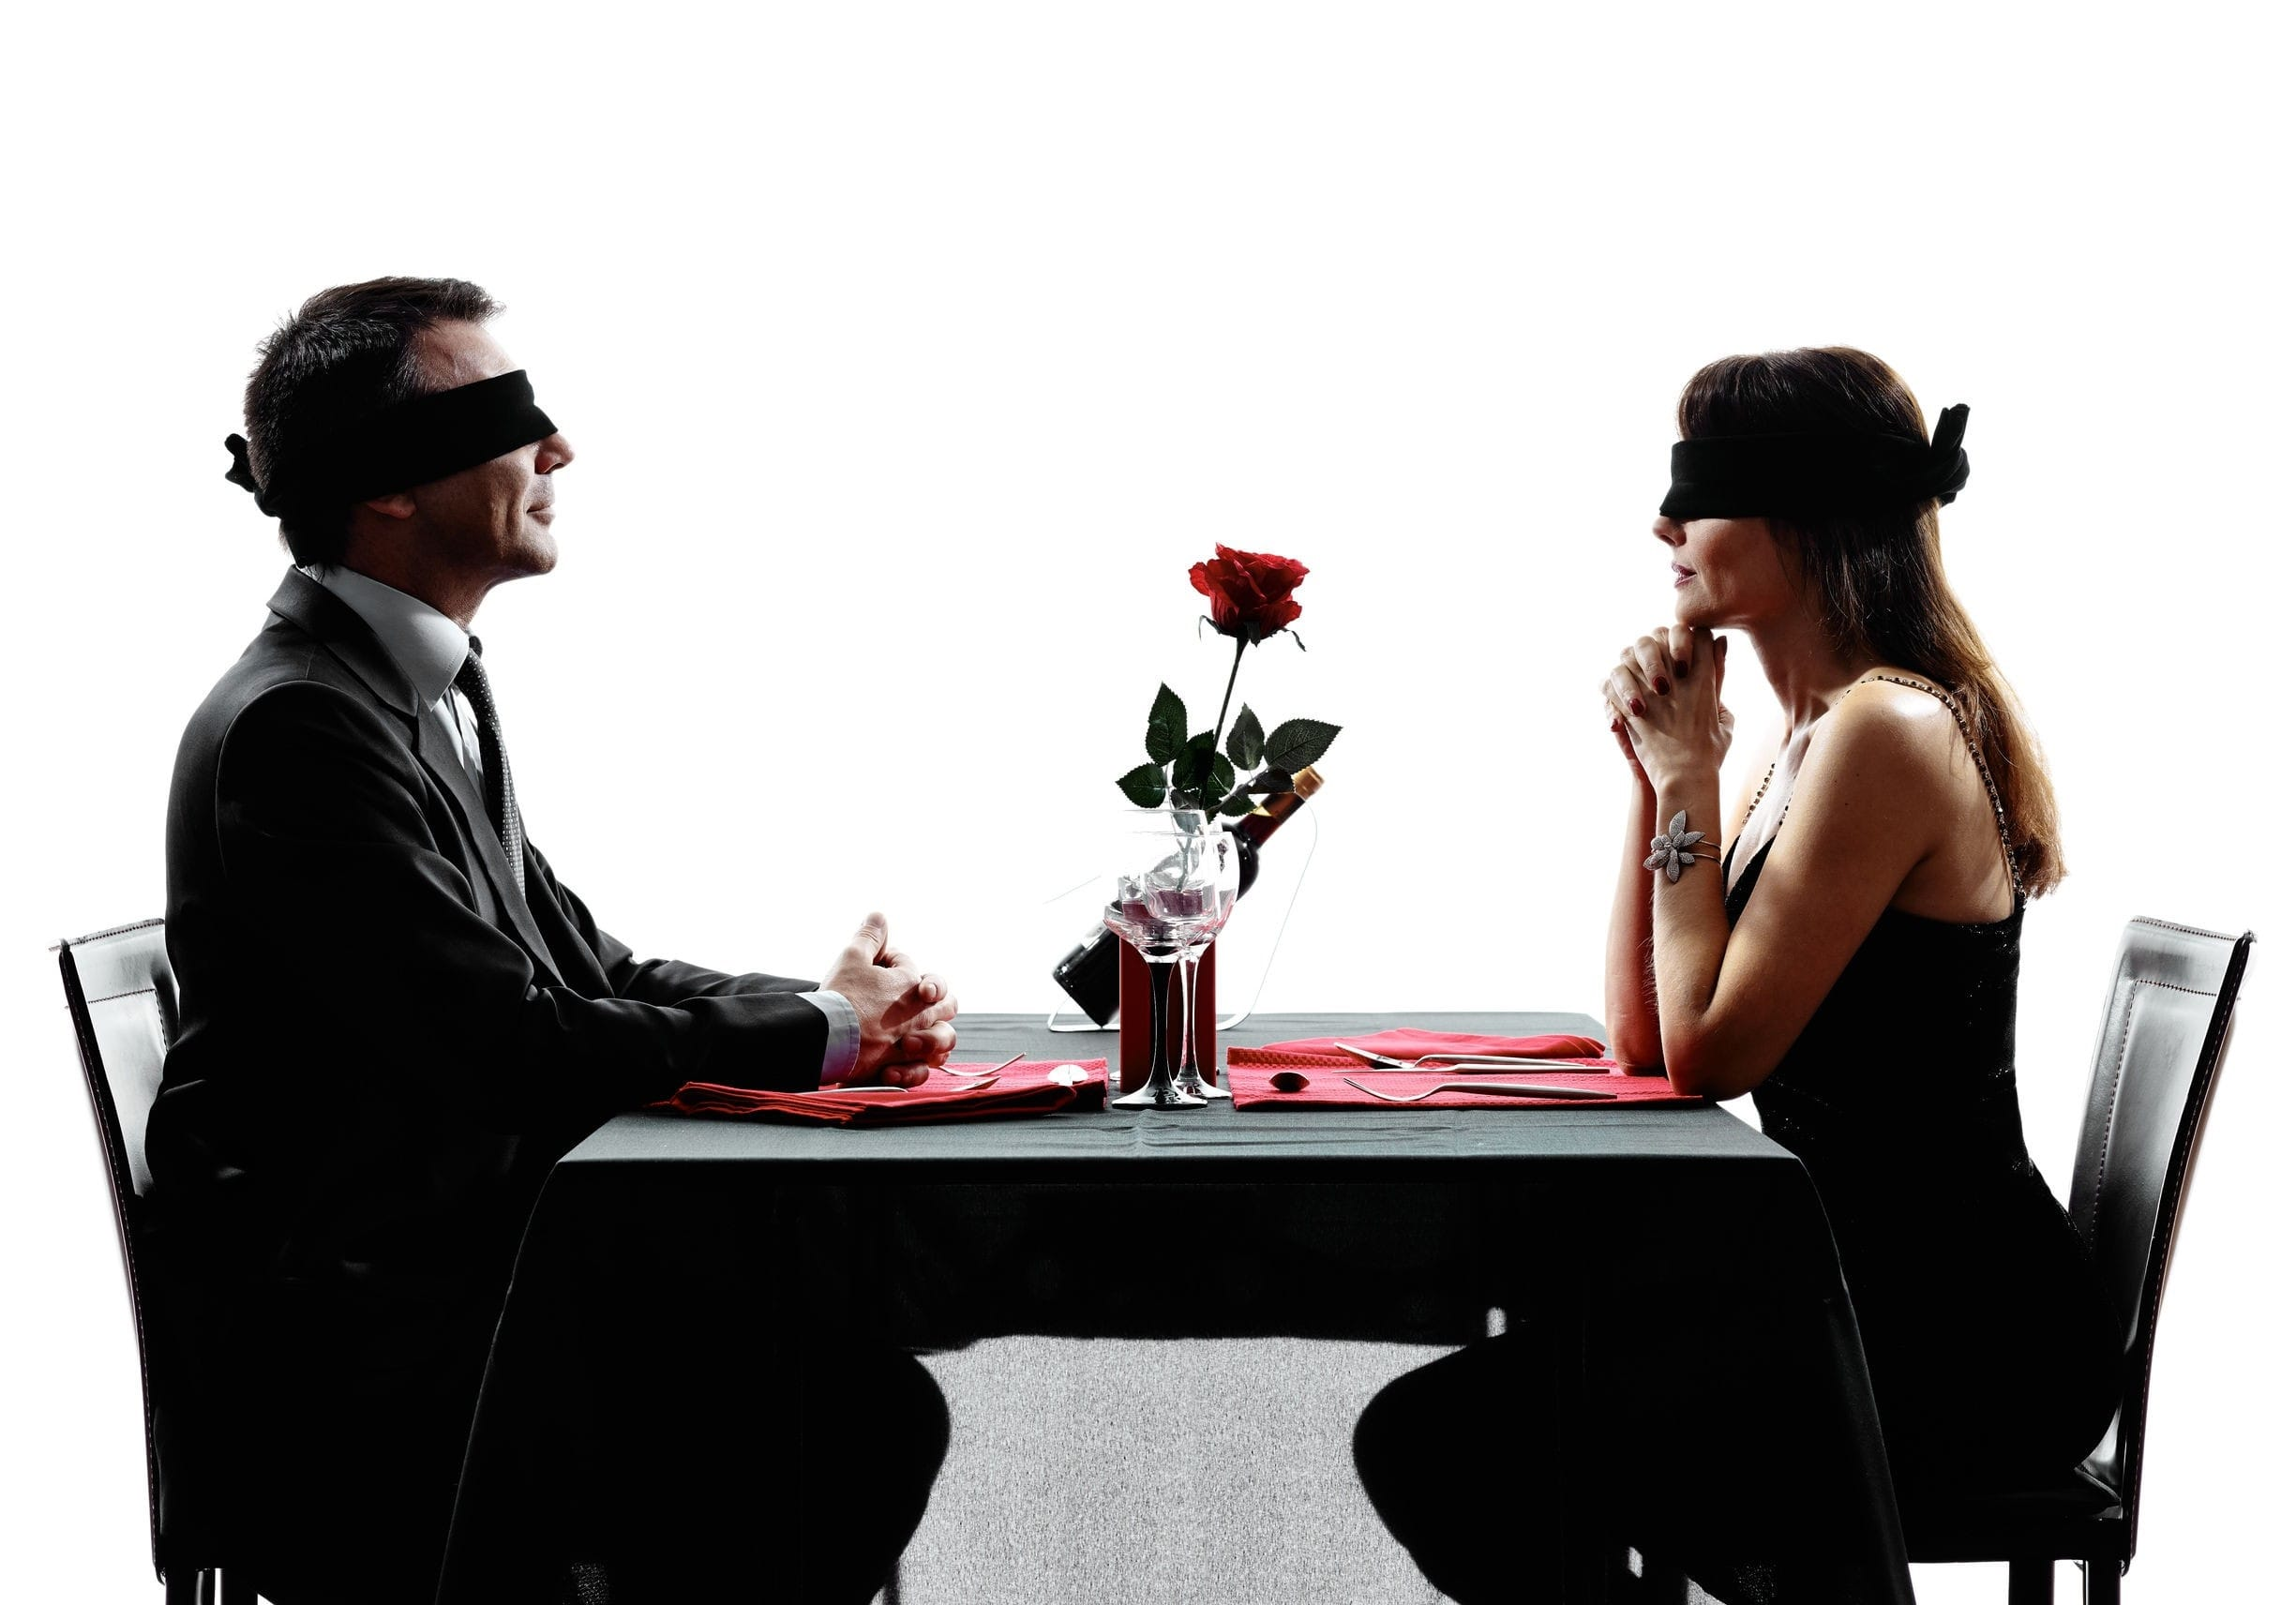 Essays on Blind Date